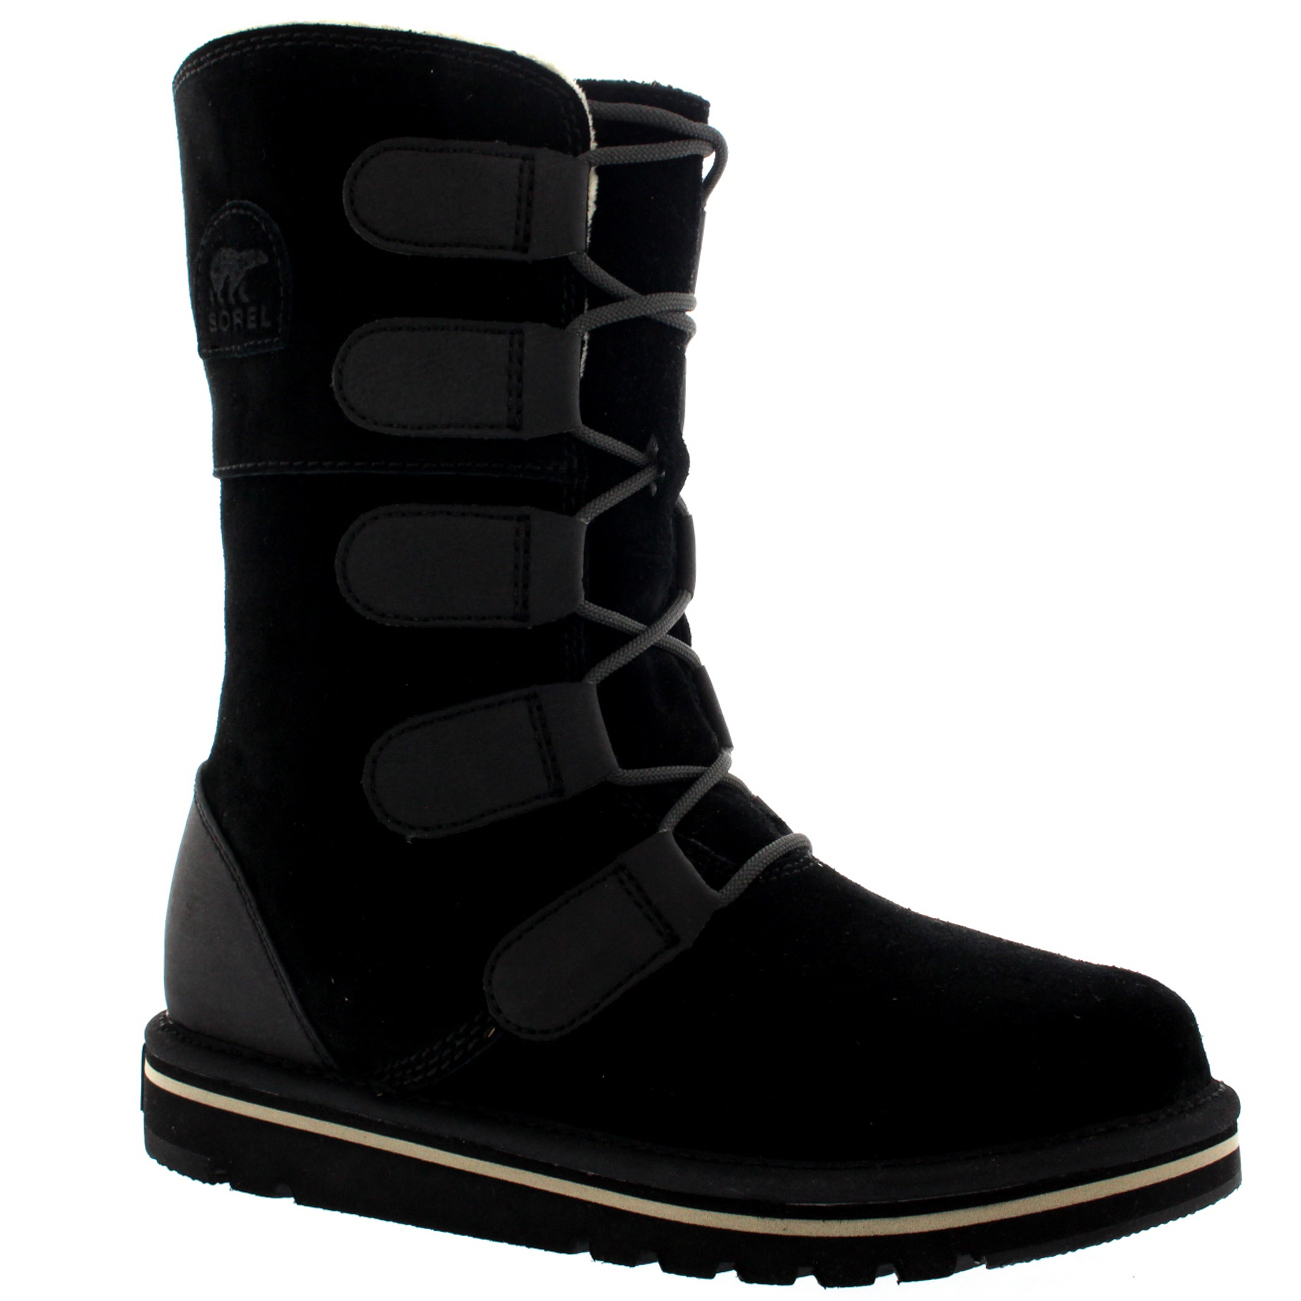 Awesome IcePick&174 Lugs Secure A Comfy, Waterproof Boot Enhanced With 200 Grams Of PrimaLoft&174 Eco Insulation Shop For Womens Sorel Tivoli Duck Boot In Black  Great Product At The Image Link Womens Shoes Uk, Womens Designer Shoes,